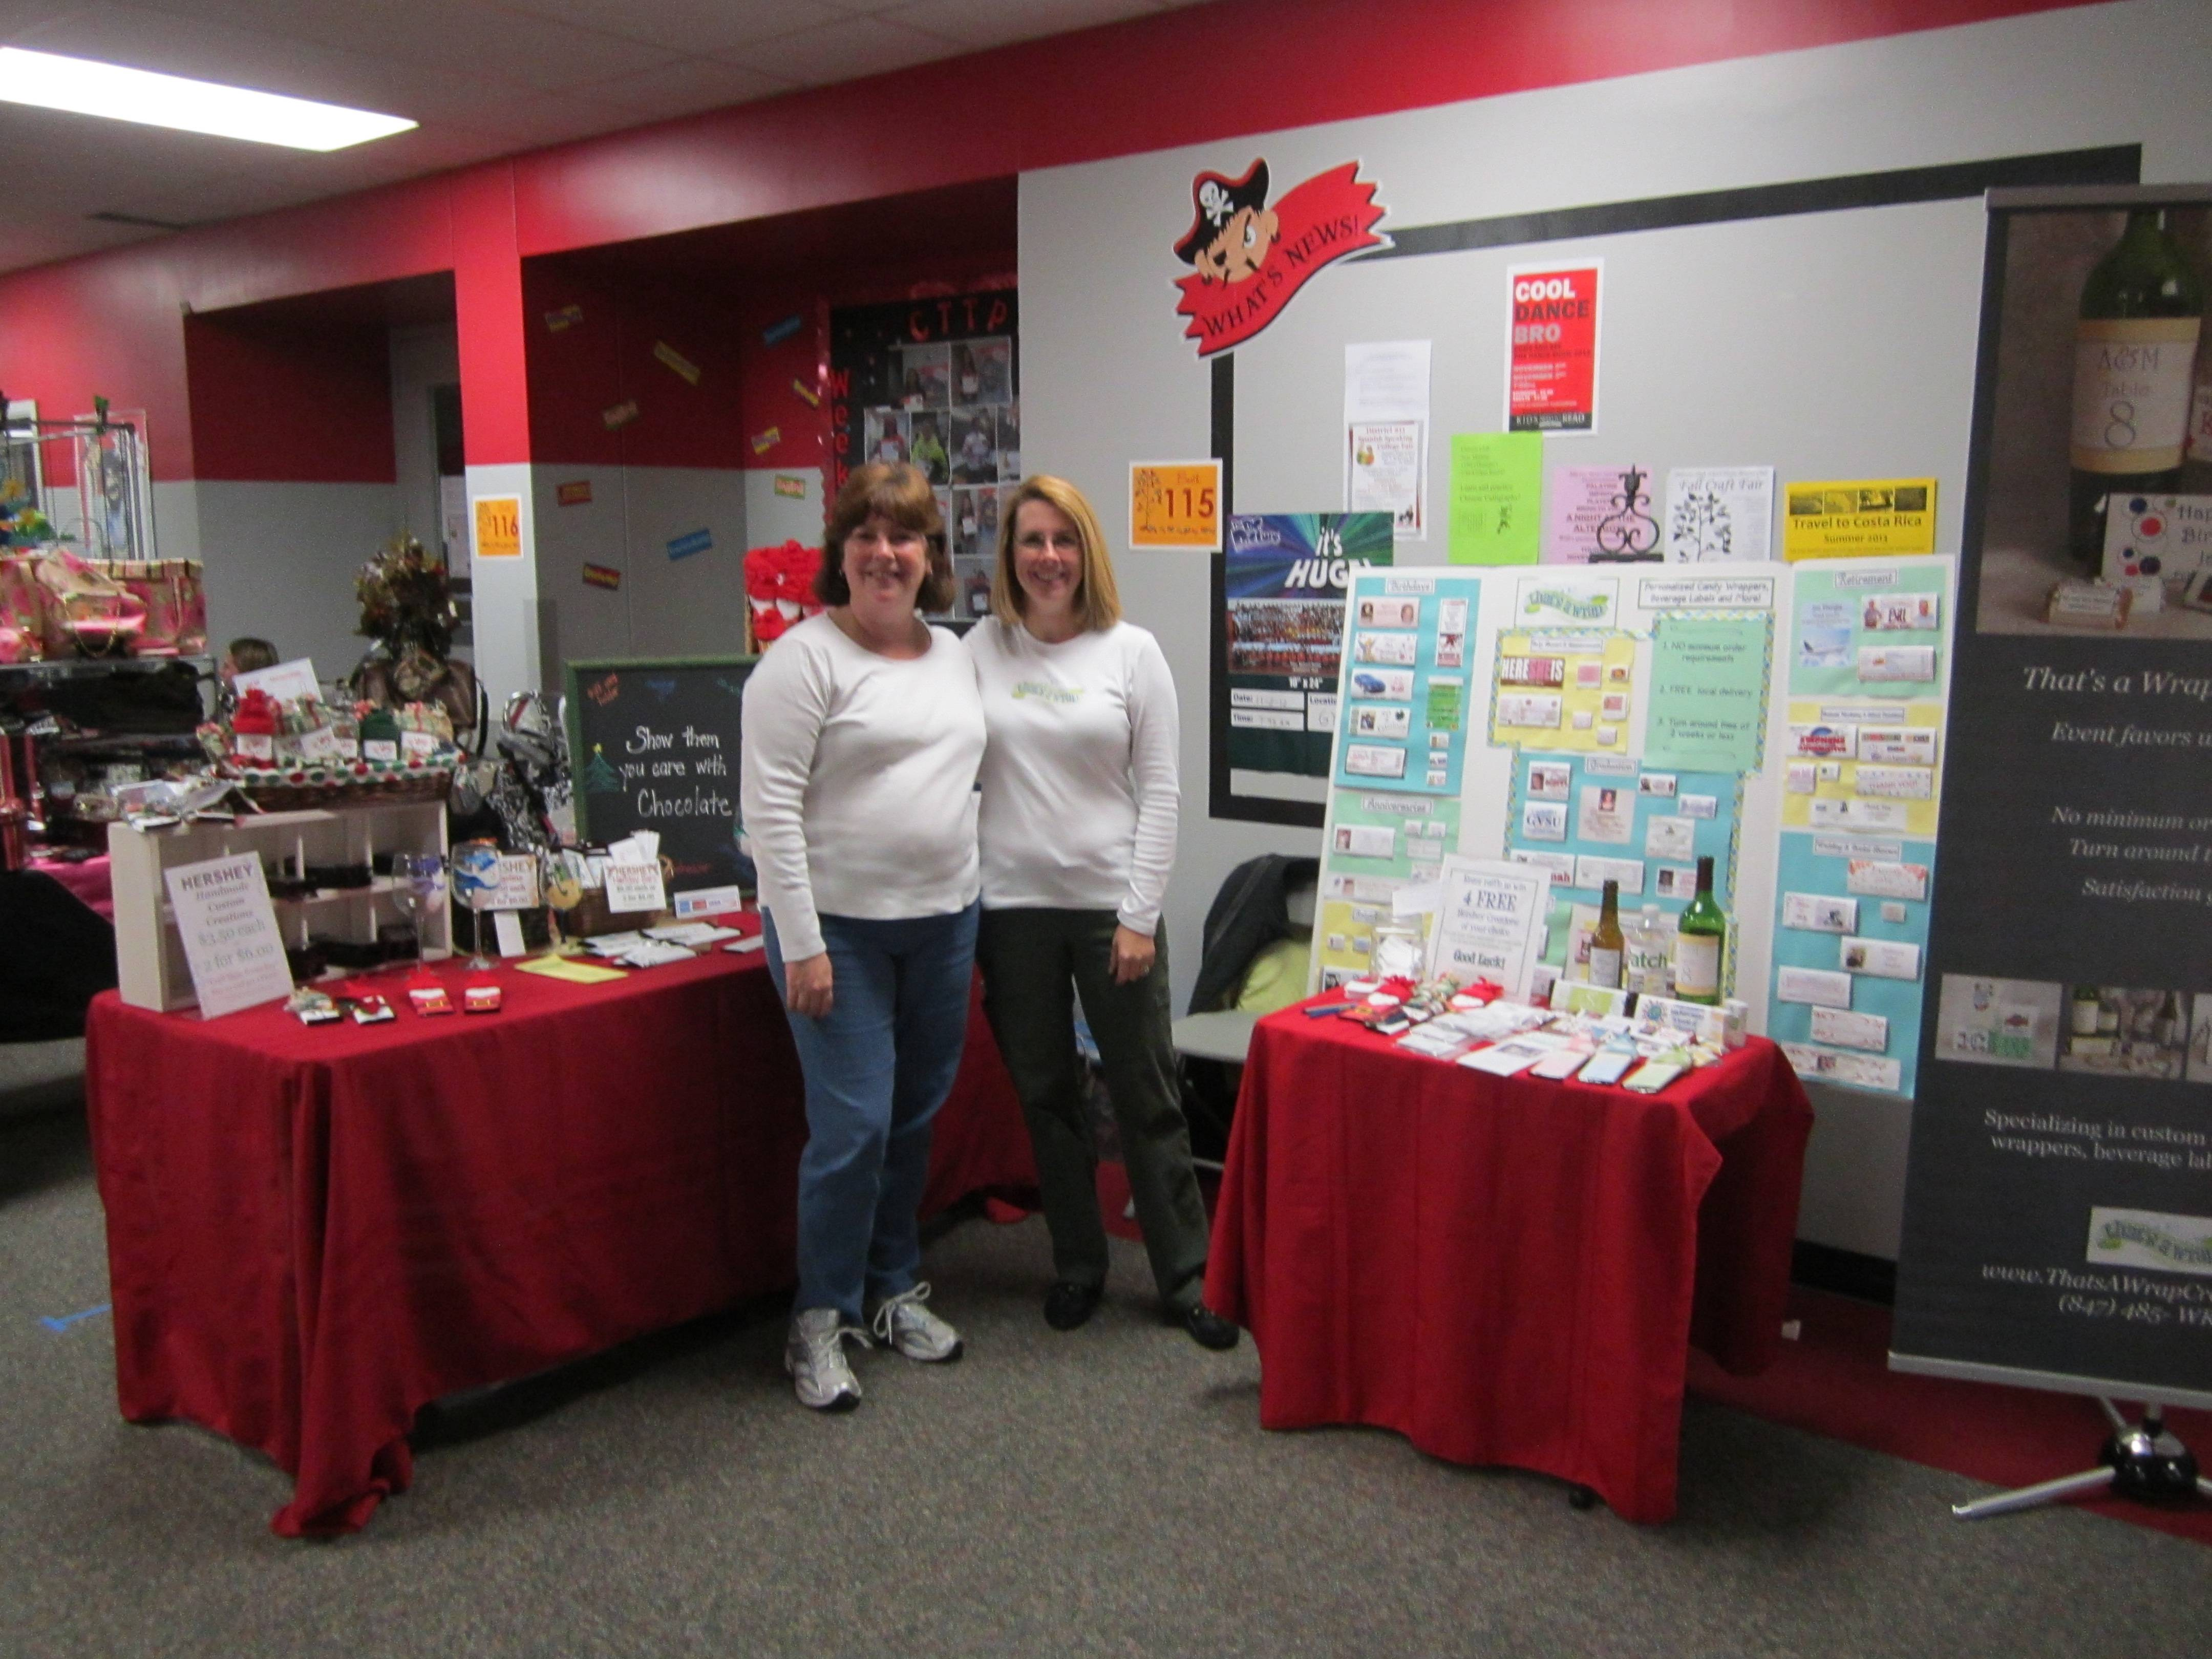 Mary Deruz (on right), a local vendor from Palatine, will be back with her booth for That's a Wrap Creations.